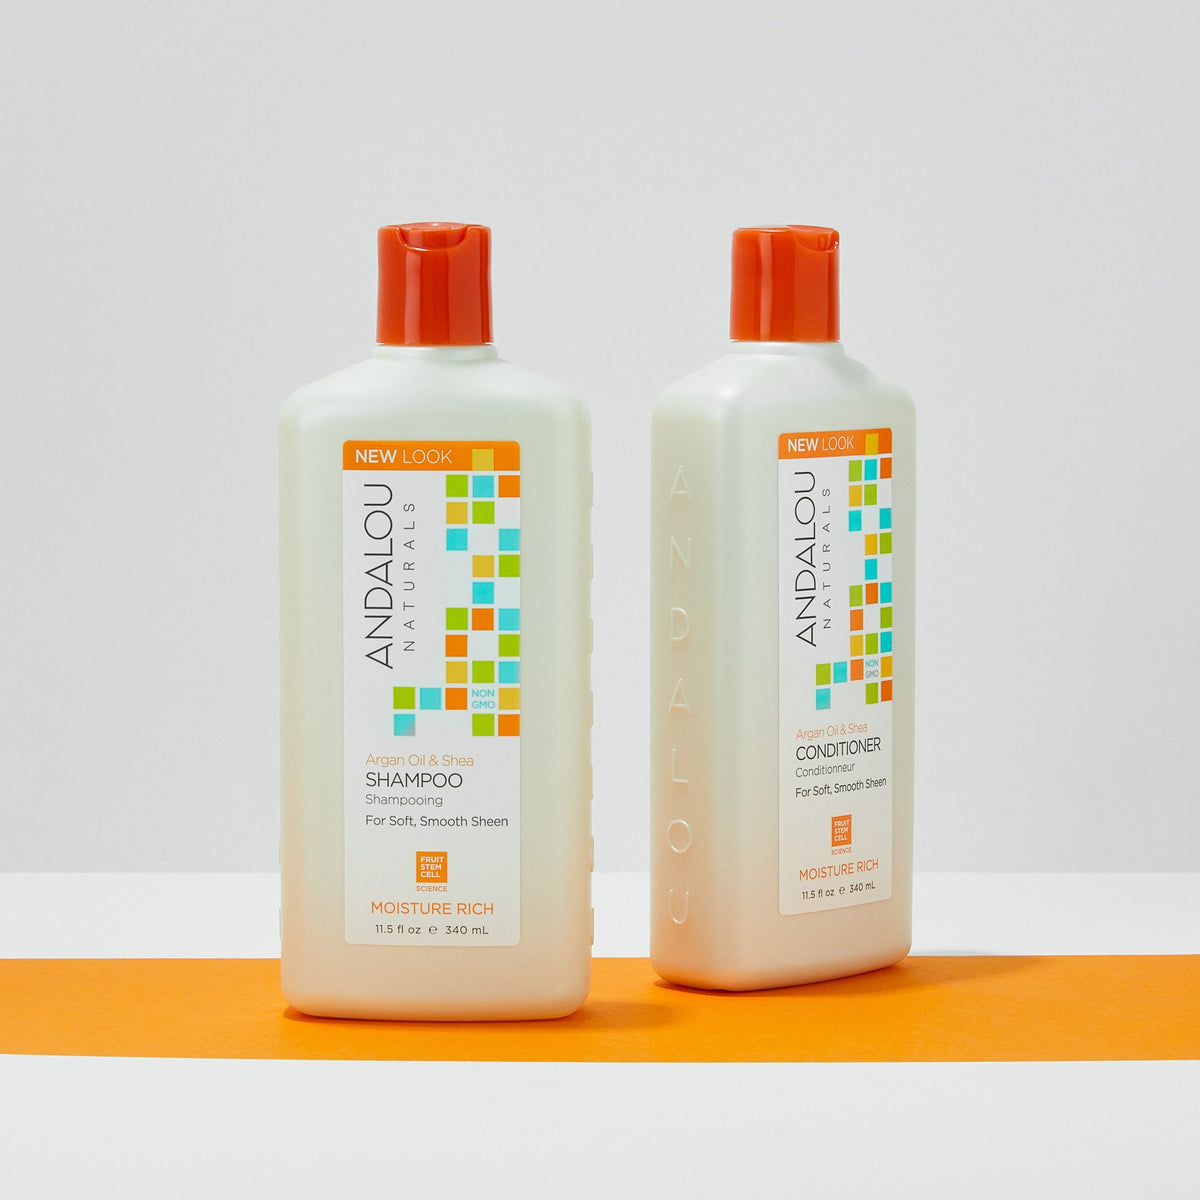 Argan Oil & Shea Moisture Rich Conditioner - Andalou Naturals US